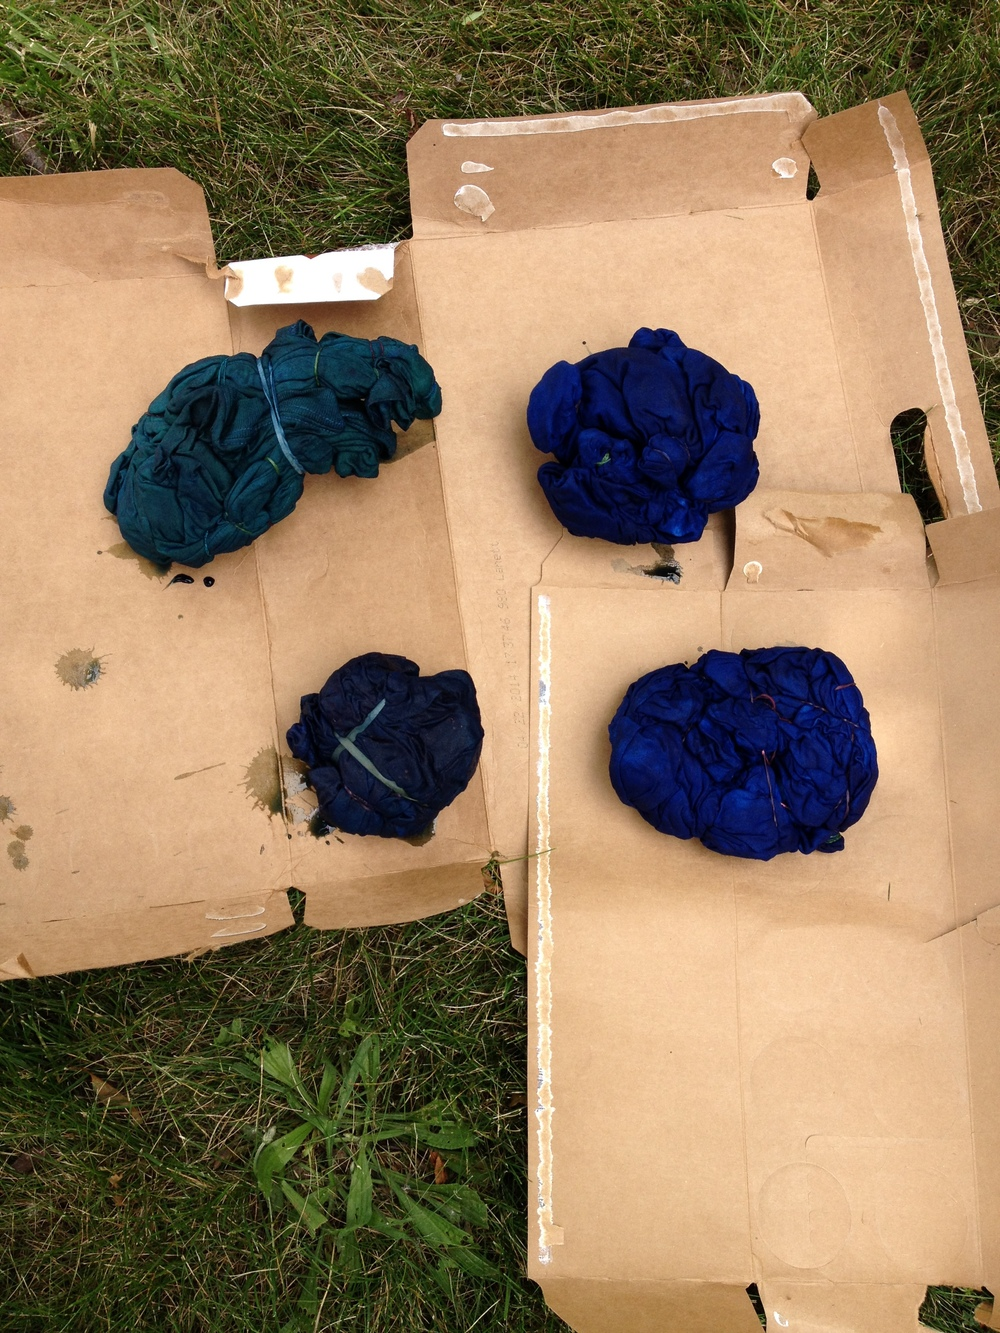 The indigo dye becomes more blue as it oxidizes.